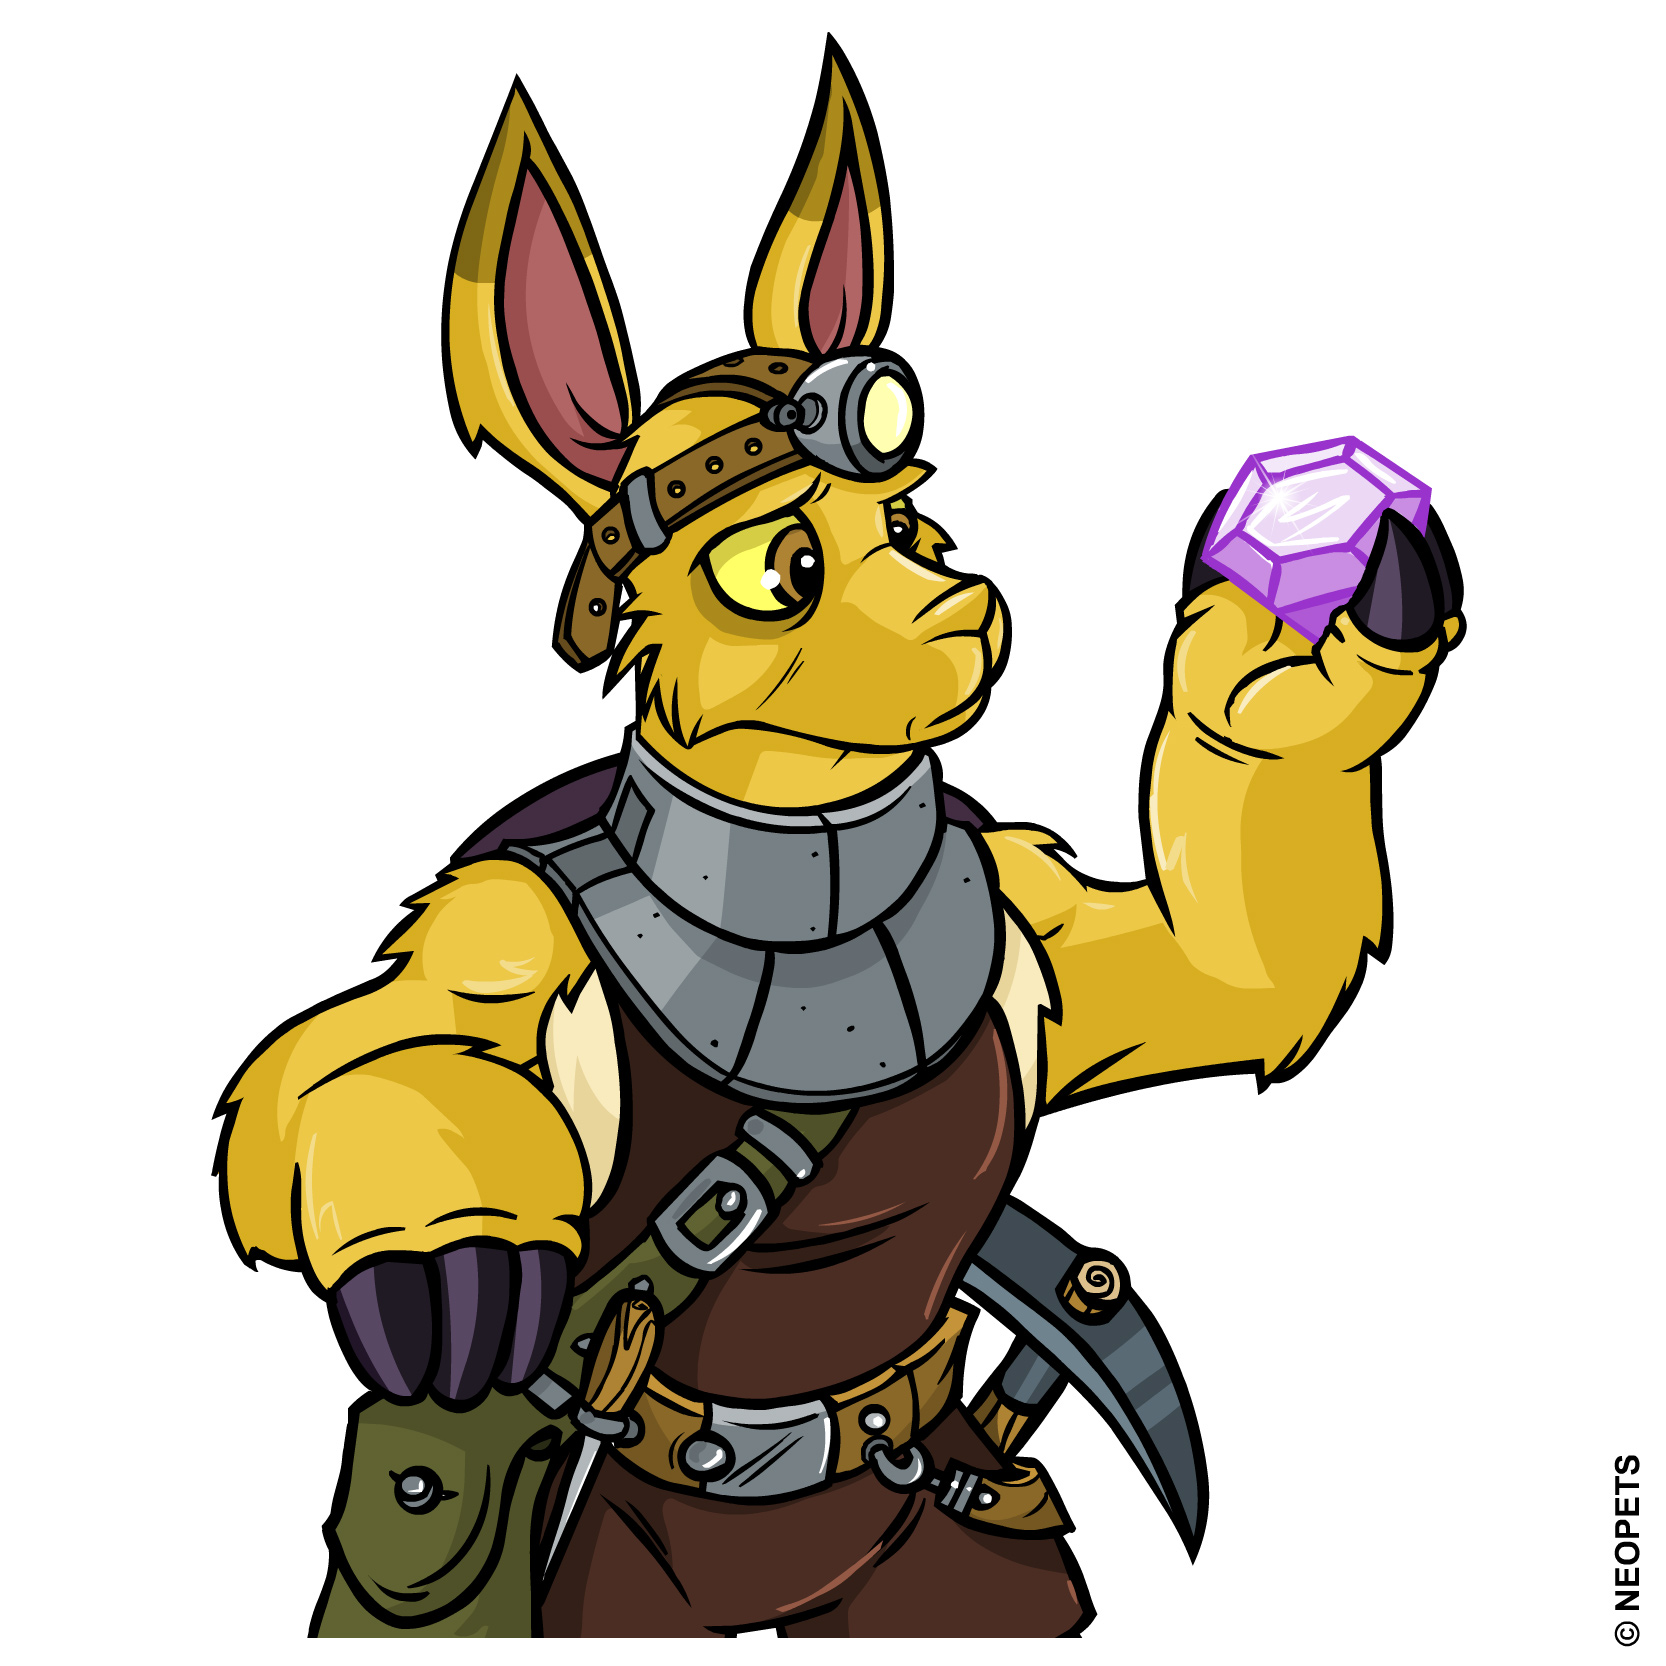 http://images.neopets.com/press/hannah_10.jpg